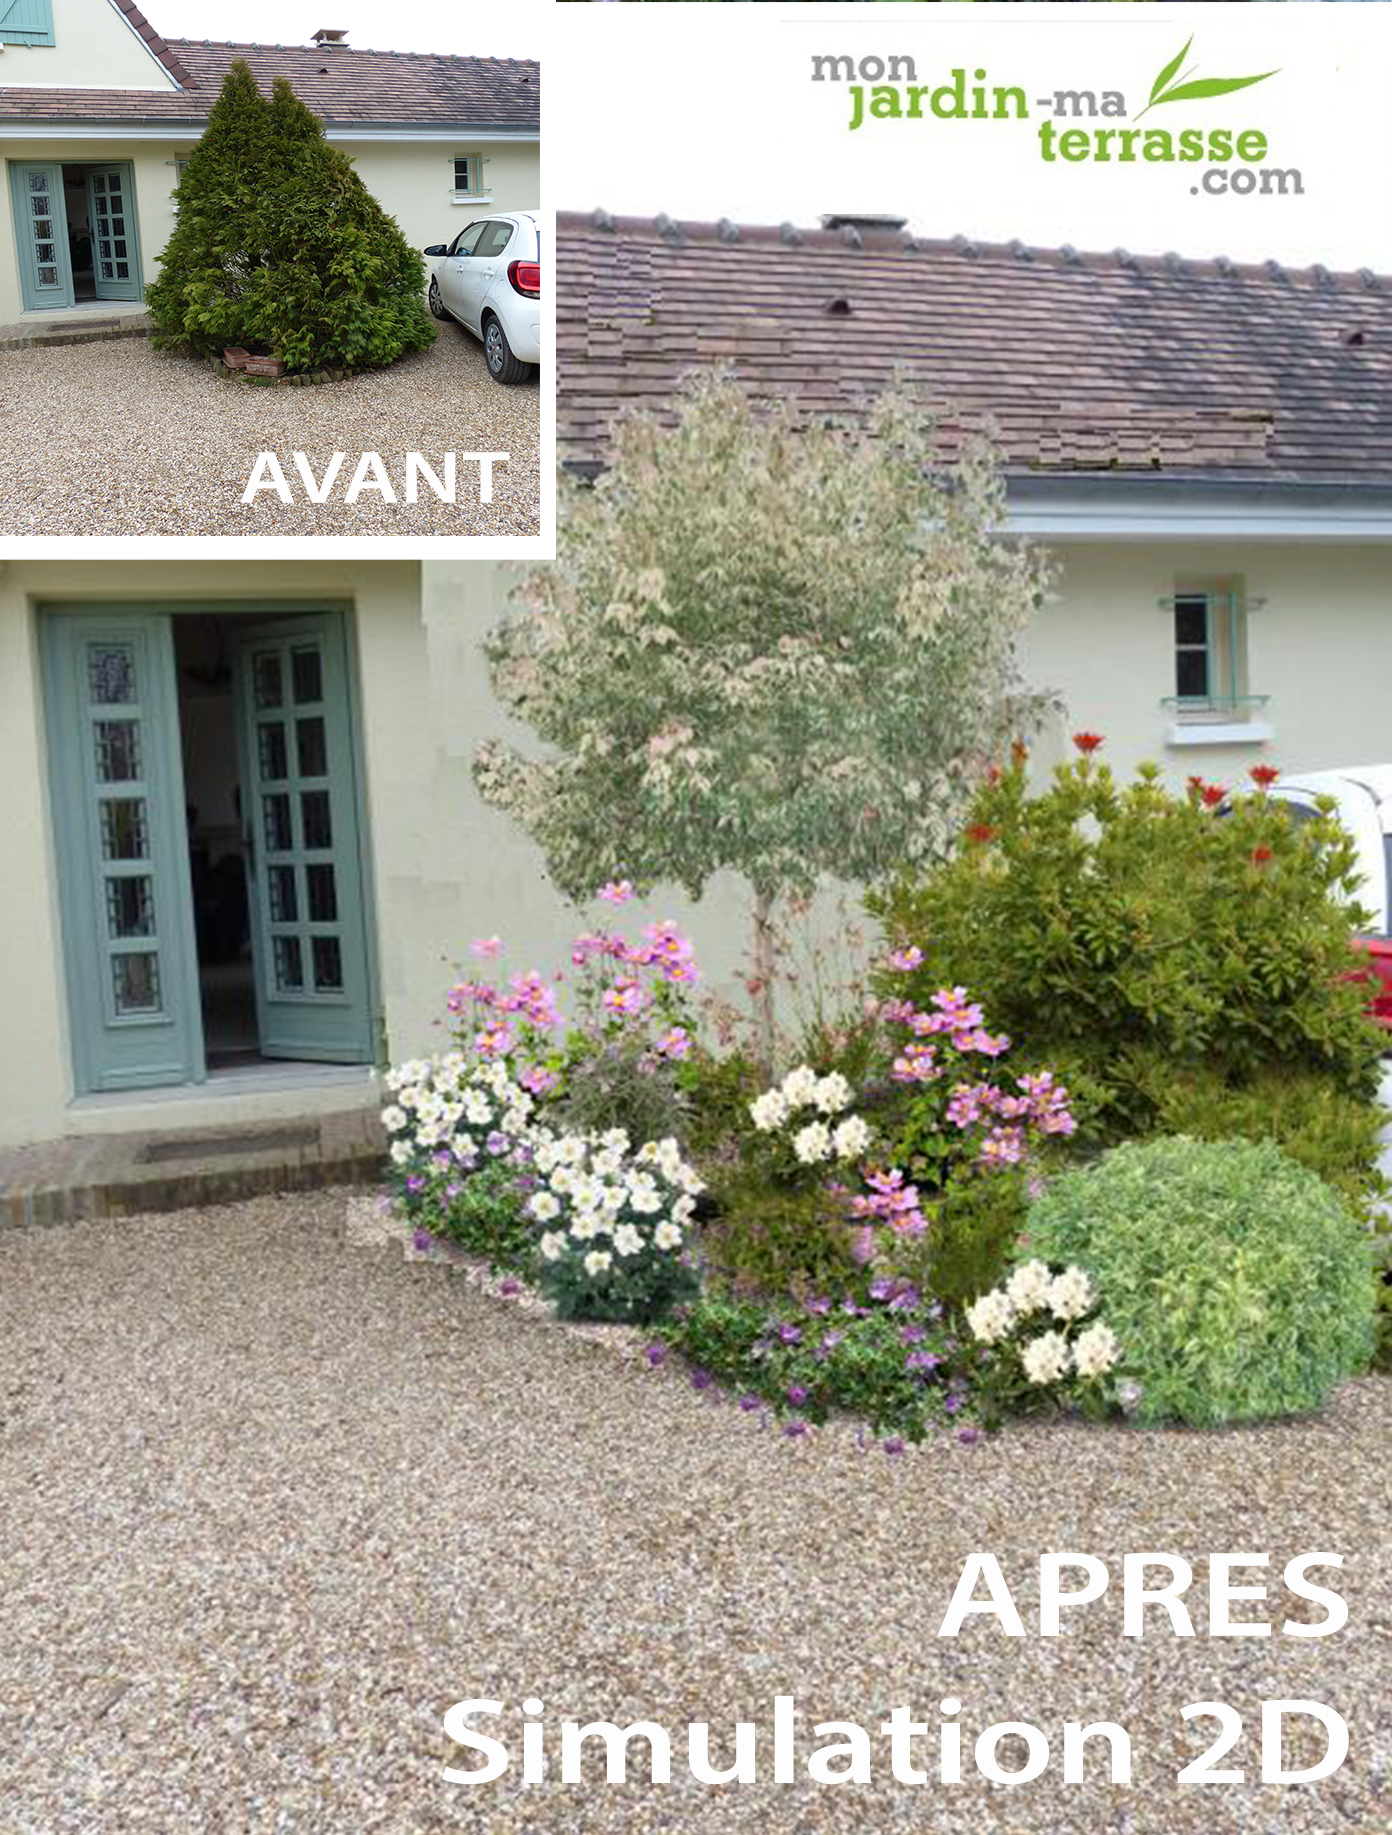 Am nagement d entr e ext rieur de maison monjardin for Amenagement entree de maison exterieur